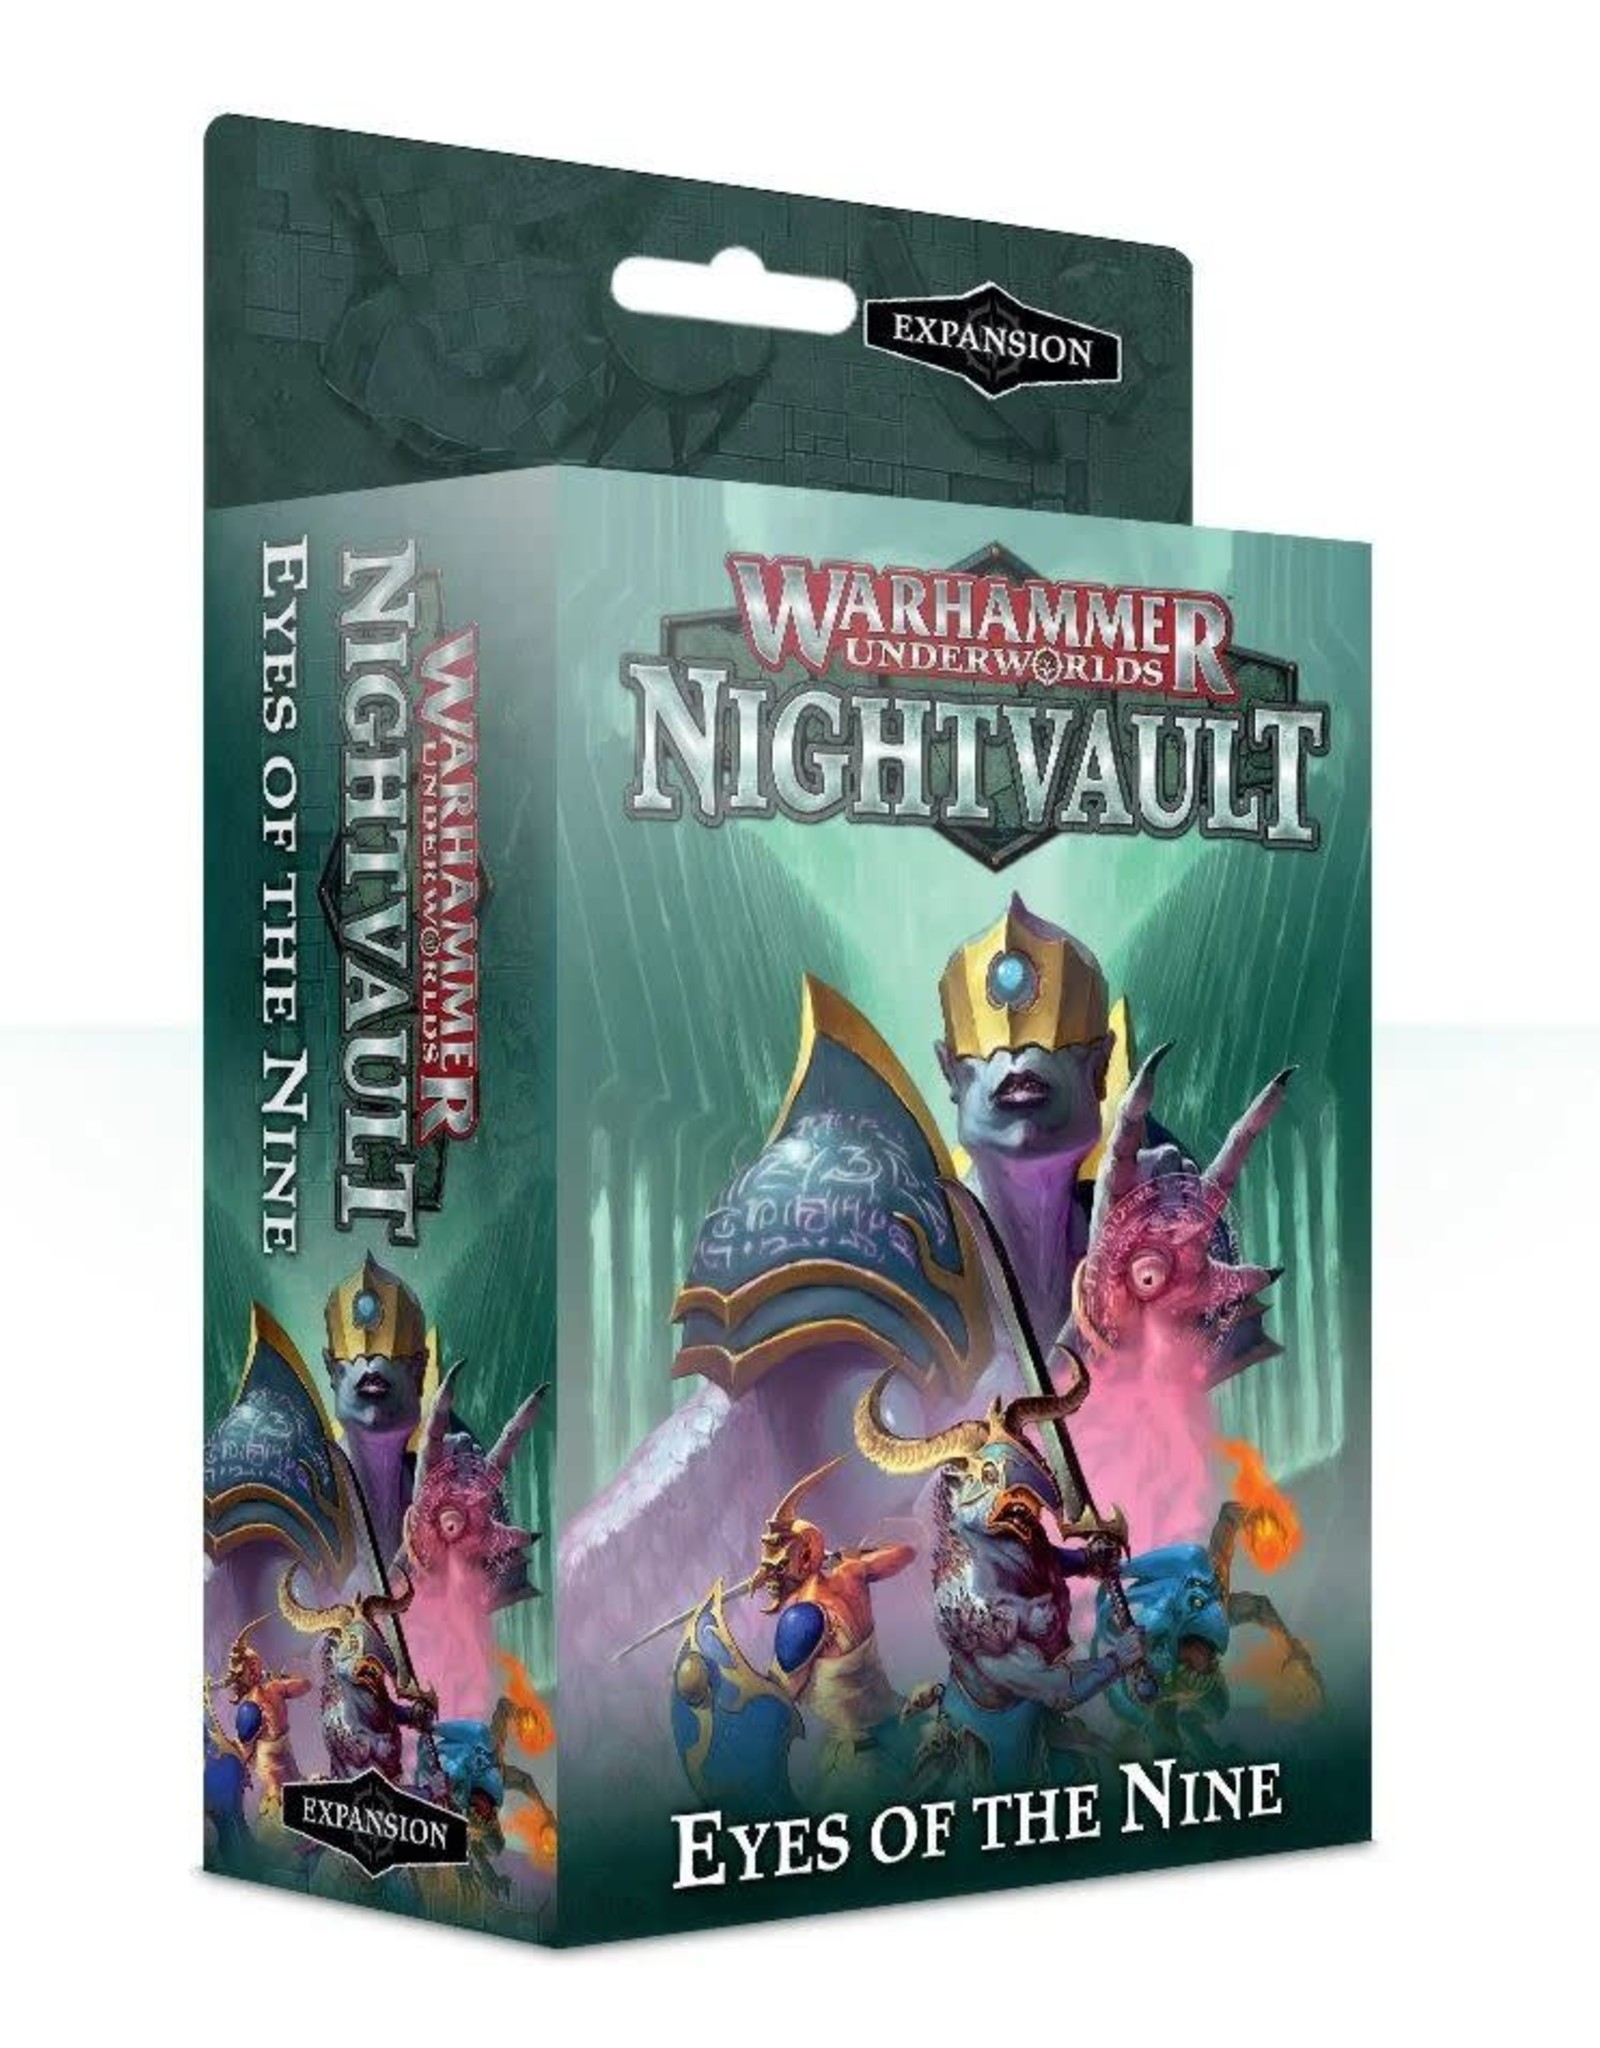 Warhammer Underworlds Underworlds -Nightvault - Eyes of the Nine